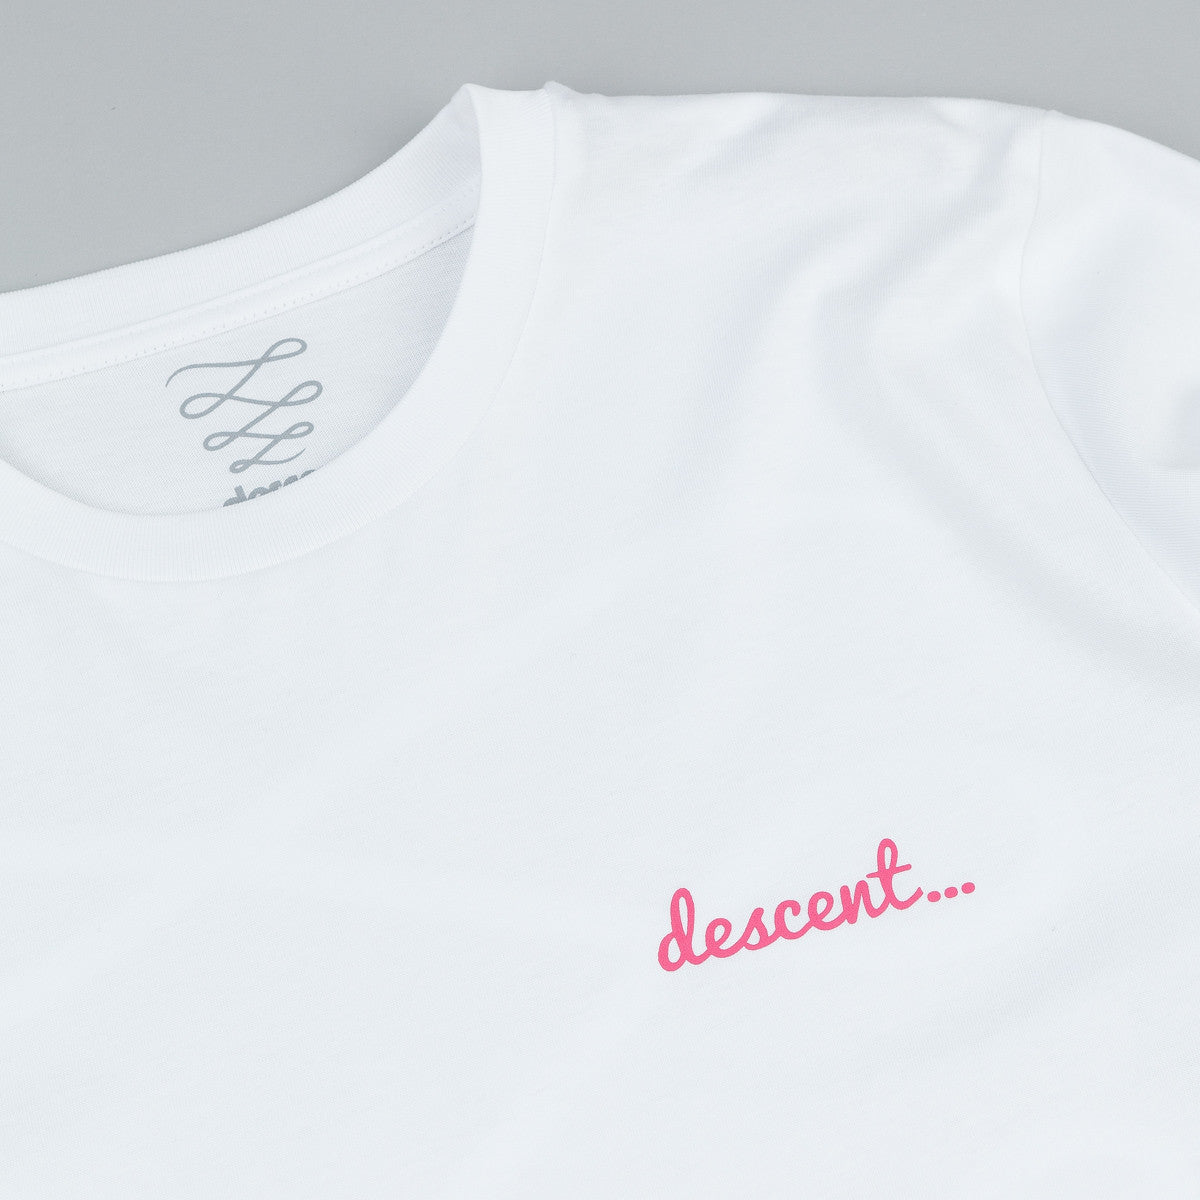 Descent Summer of '15 Longsleeve T-Shirt - White